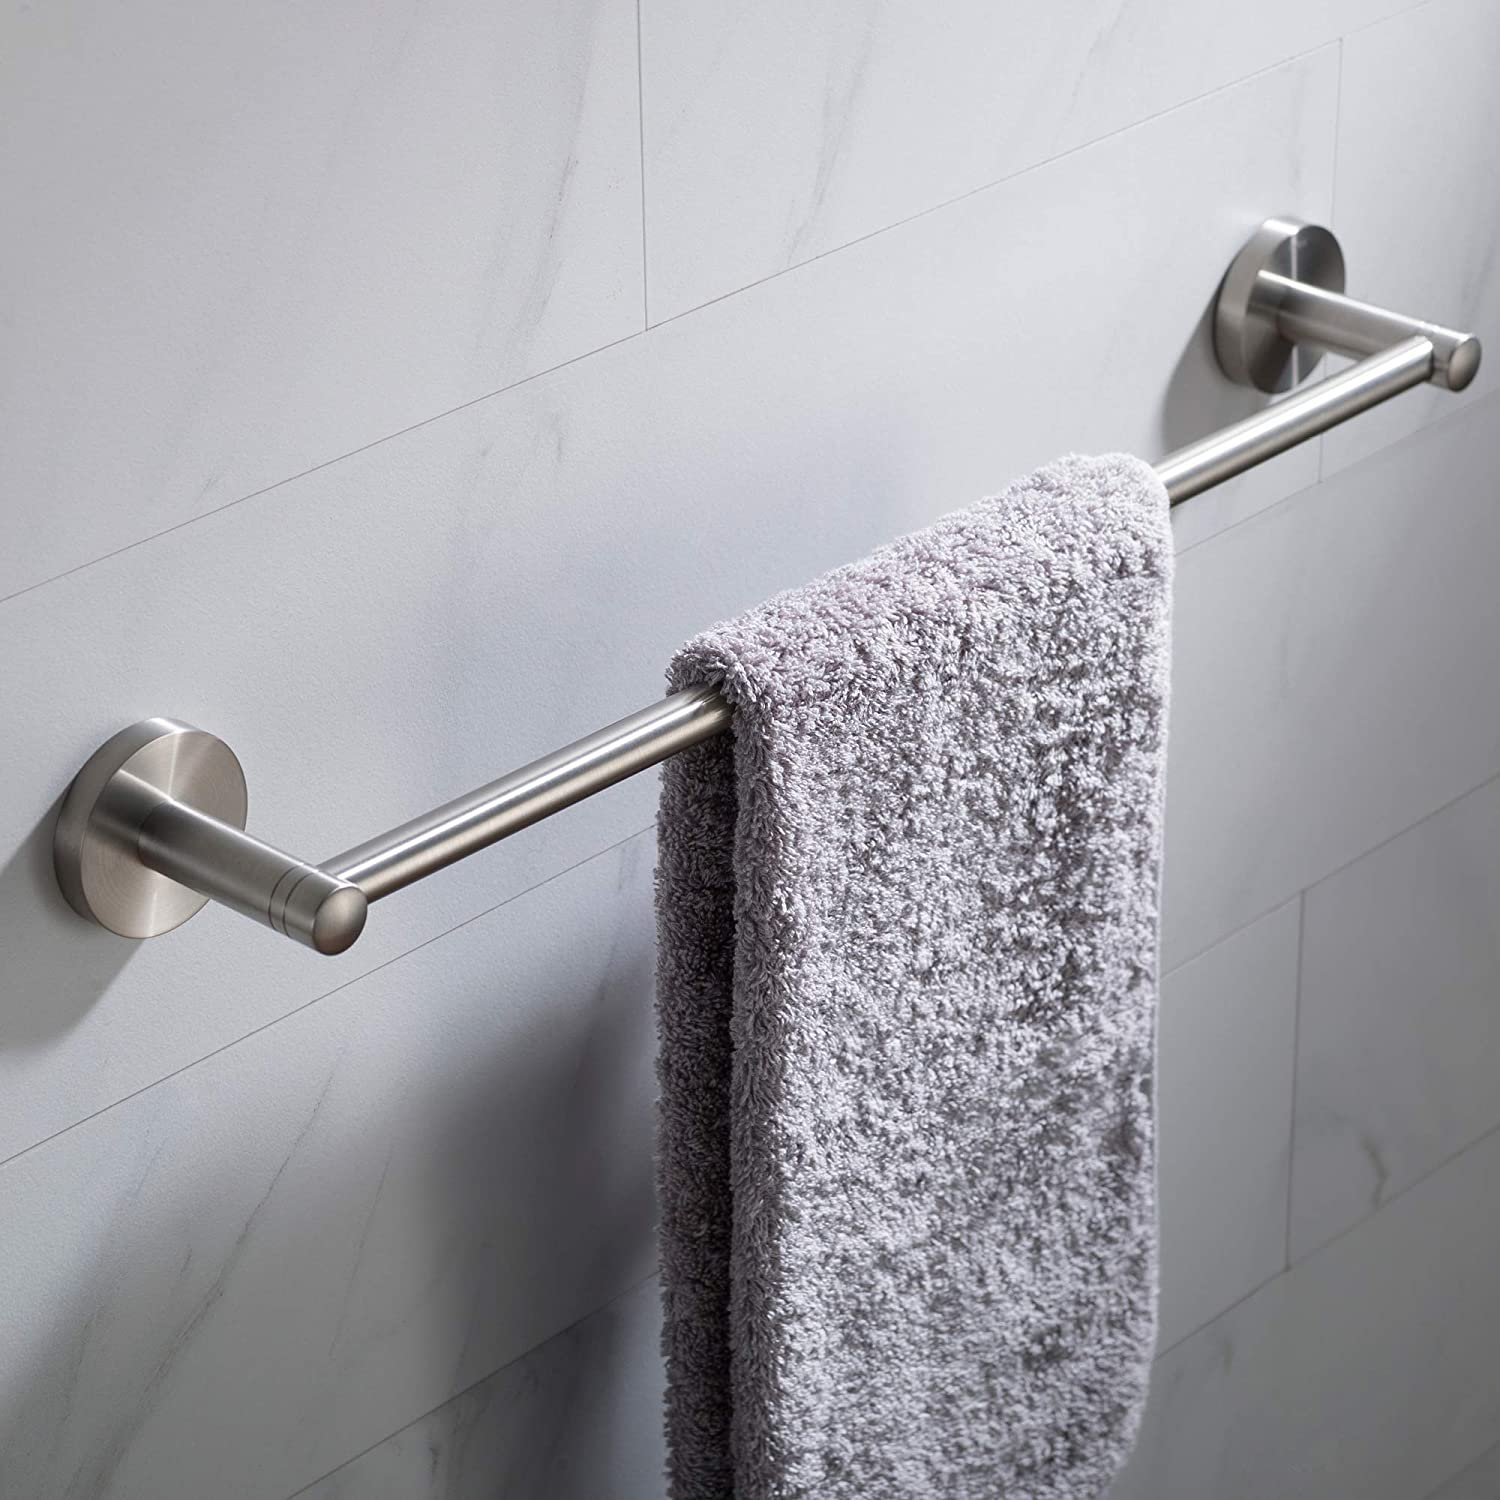 Kraus Elie 18 Inch Bathroom Towel Bar Brushed Nickel Finish Kea 18836bn Amazon Com